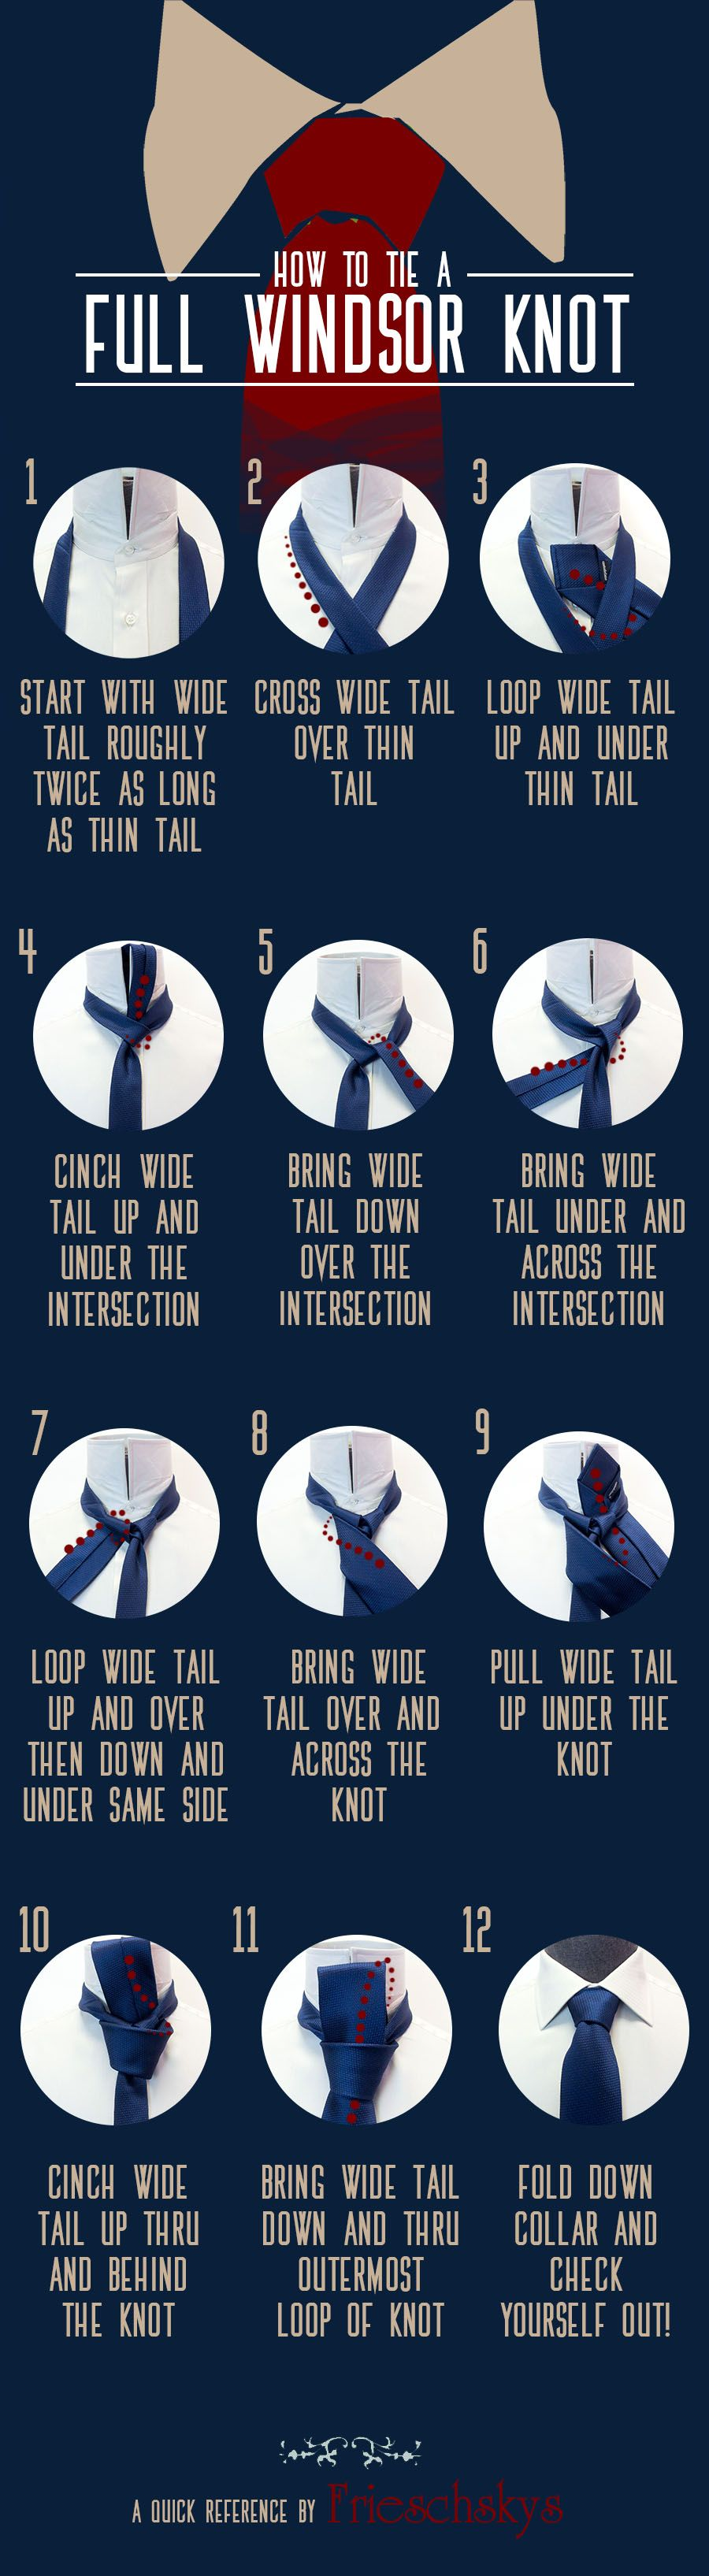 Learn how to tie a full windsor knot like a pro the gentlemans learn how to tie a full windsor knot like a pro ccuart Images